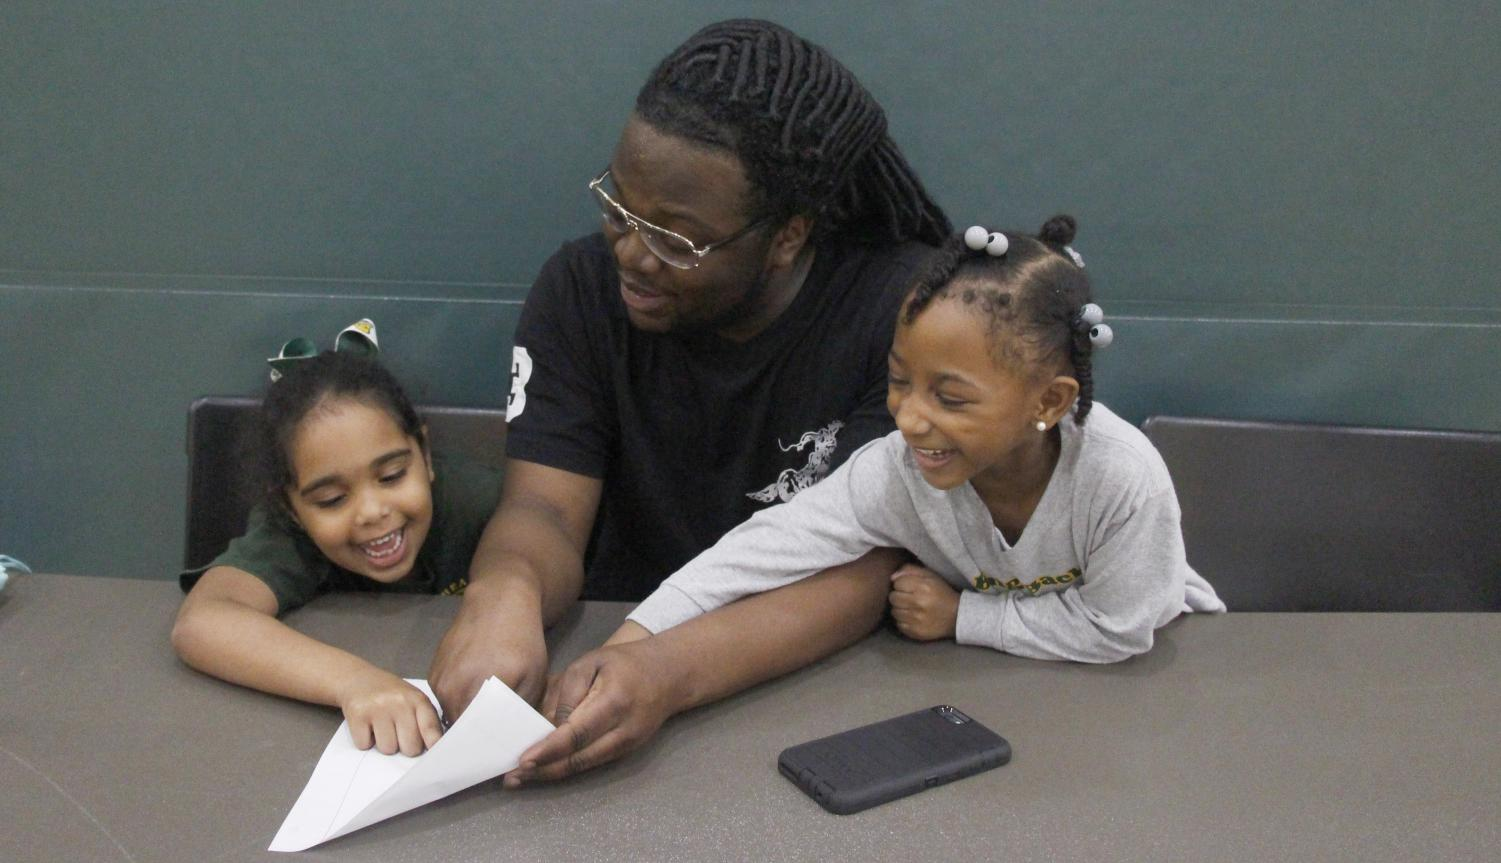 """Cameron Wood, a sophomore business administration major, helps two kindergartners with their homework. This contributes to the goals of the """"Rec Kids After School Program."""""""